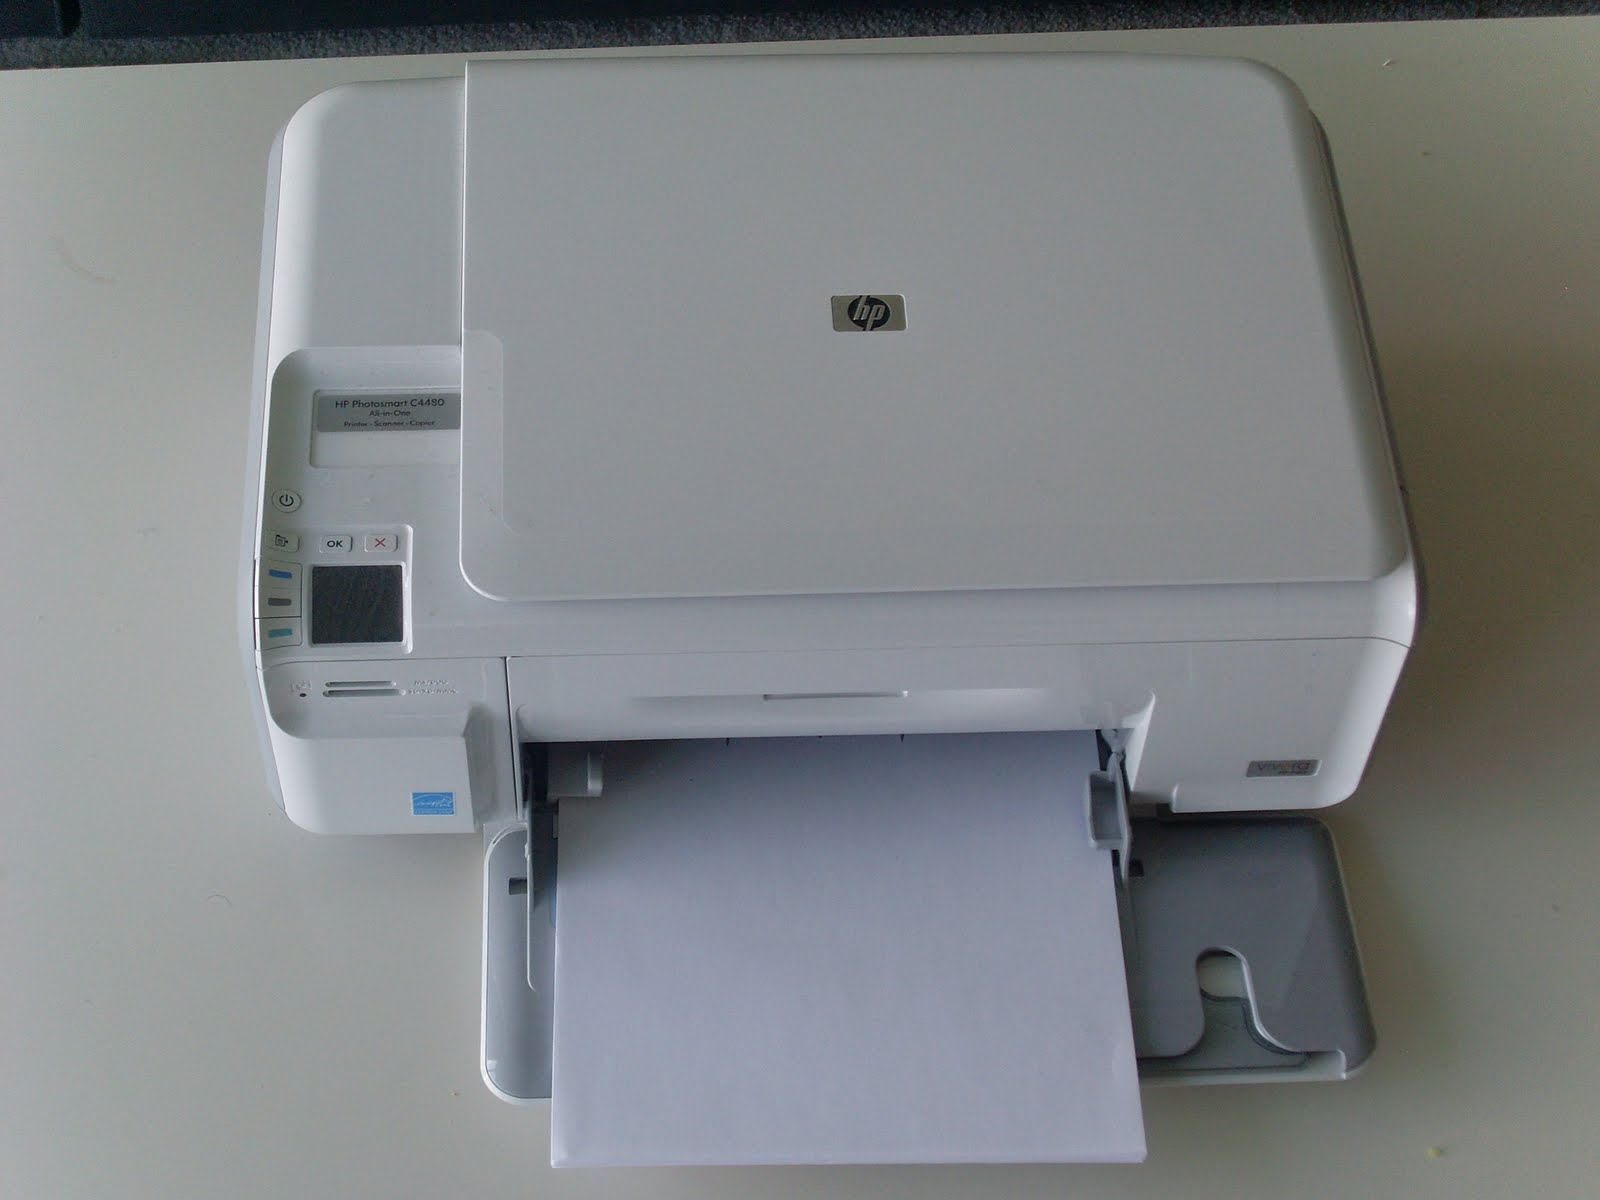 Hp photosmart c4480 driver free download Epson Official Support Epson US